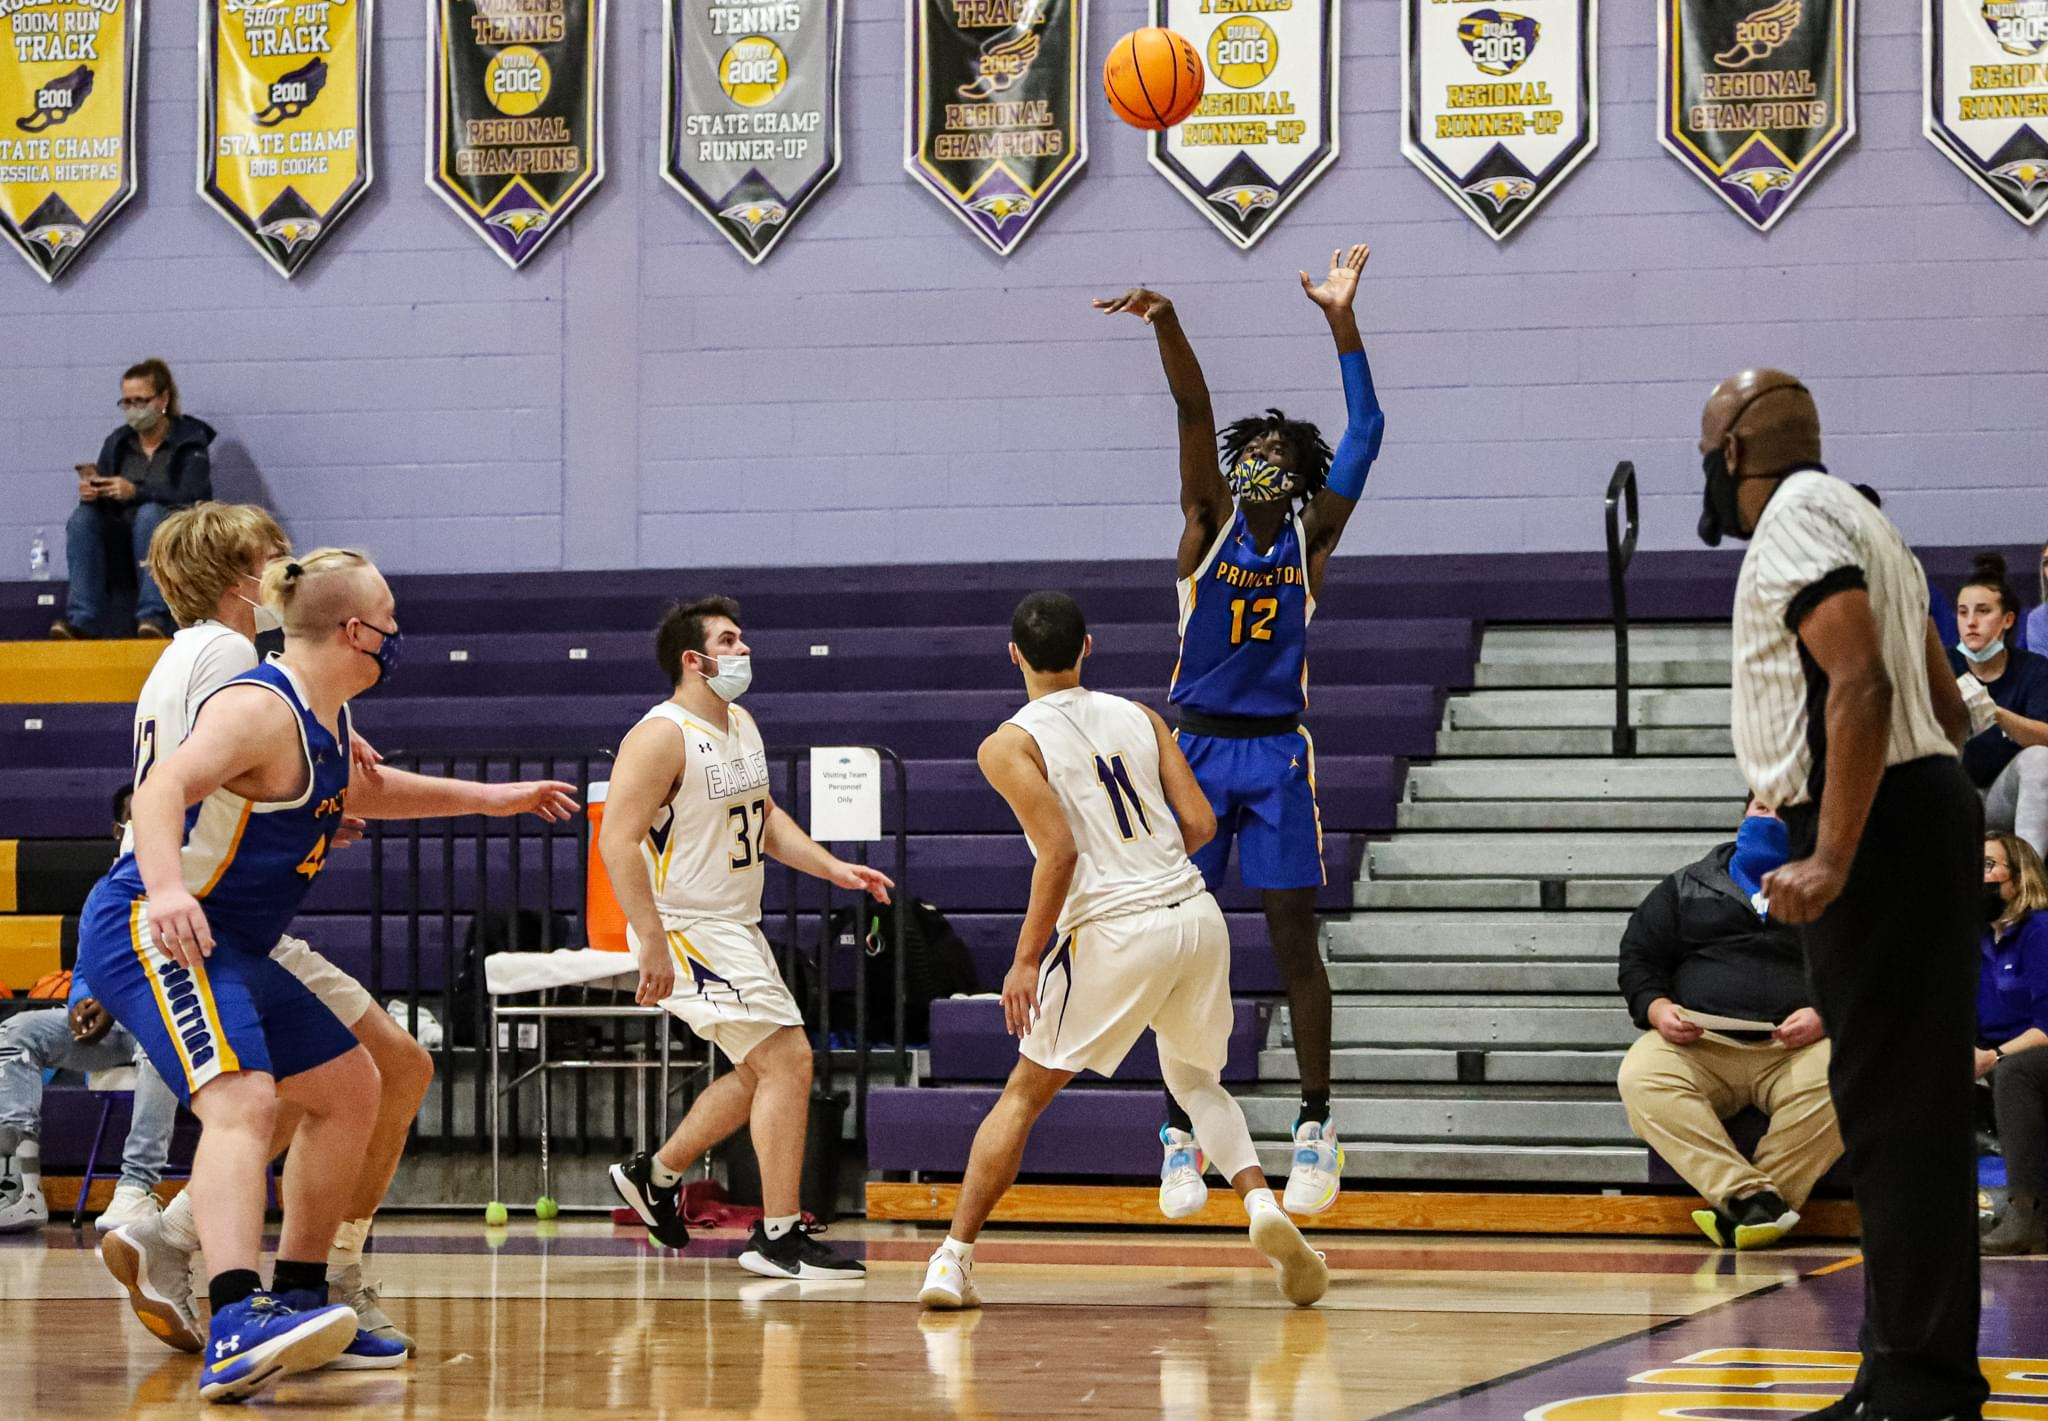 Boys Basketball: Princeton Turns Back Rosewood To Remain Undefeated (PHOTO GALLERY)